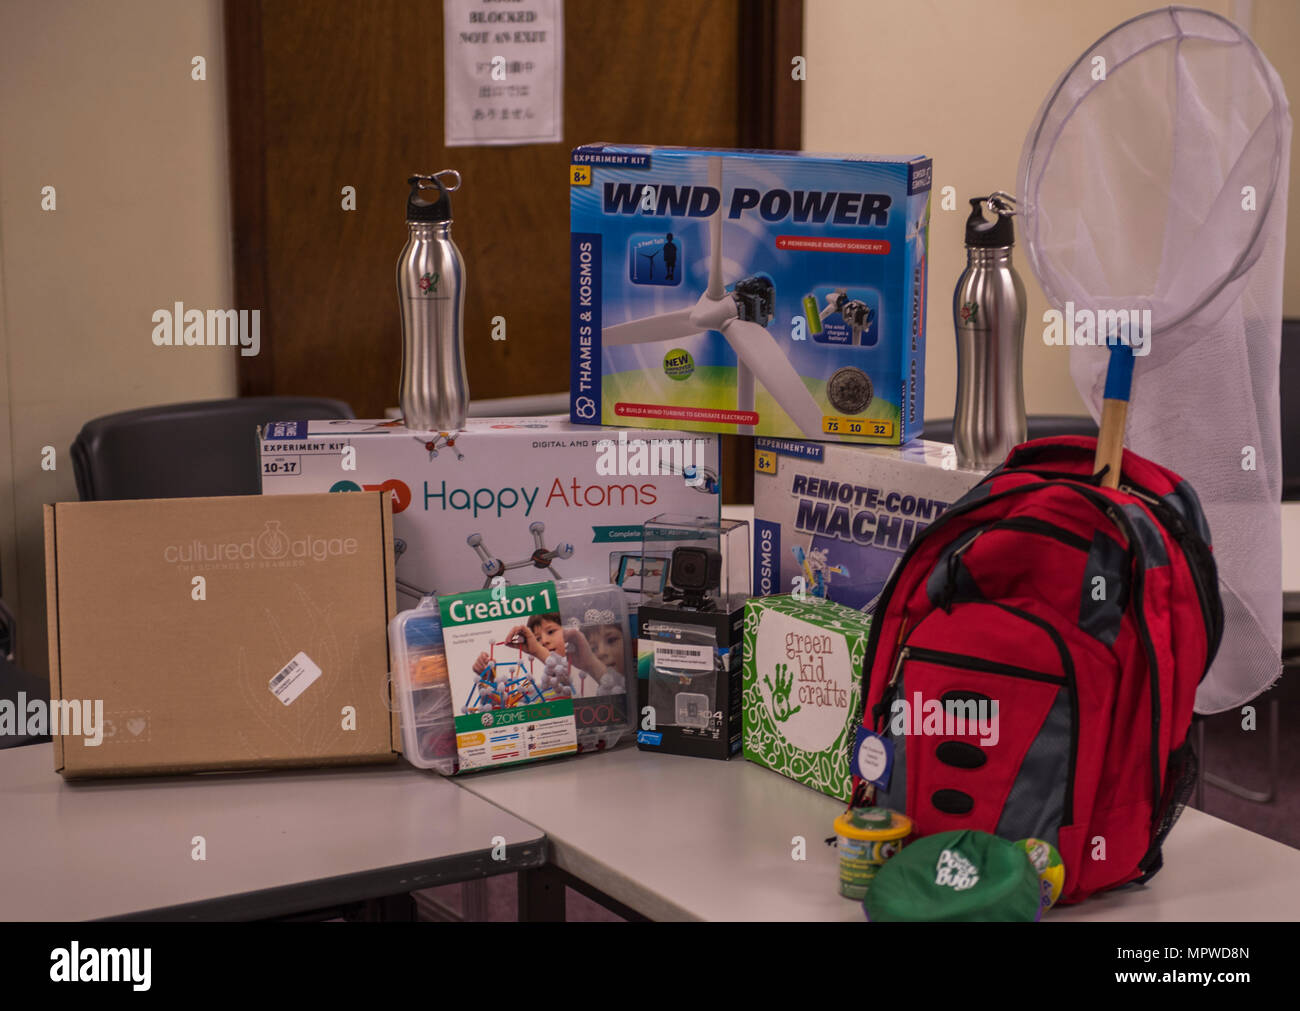 Prizes for office contest